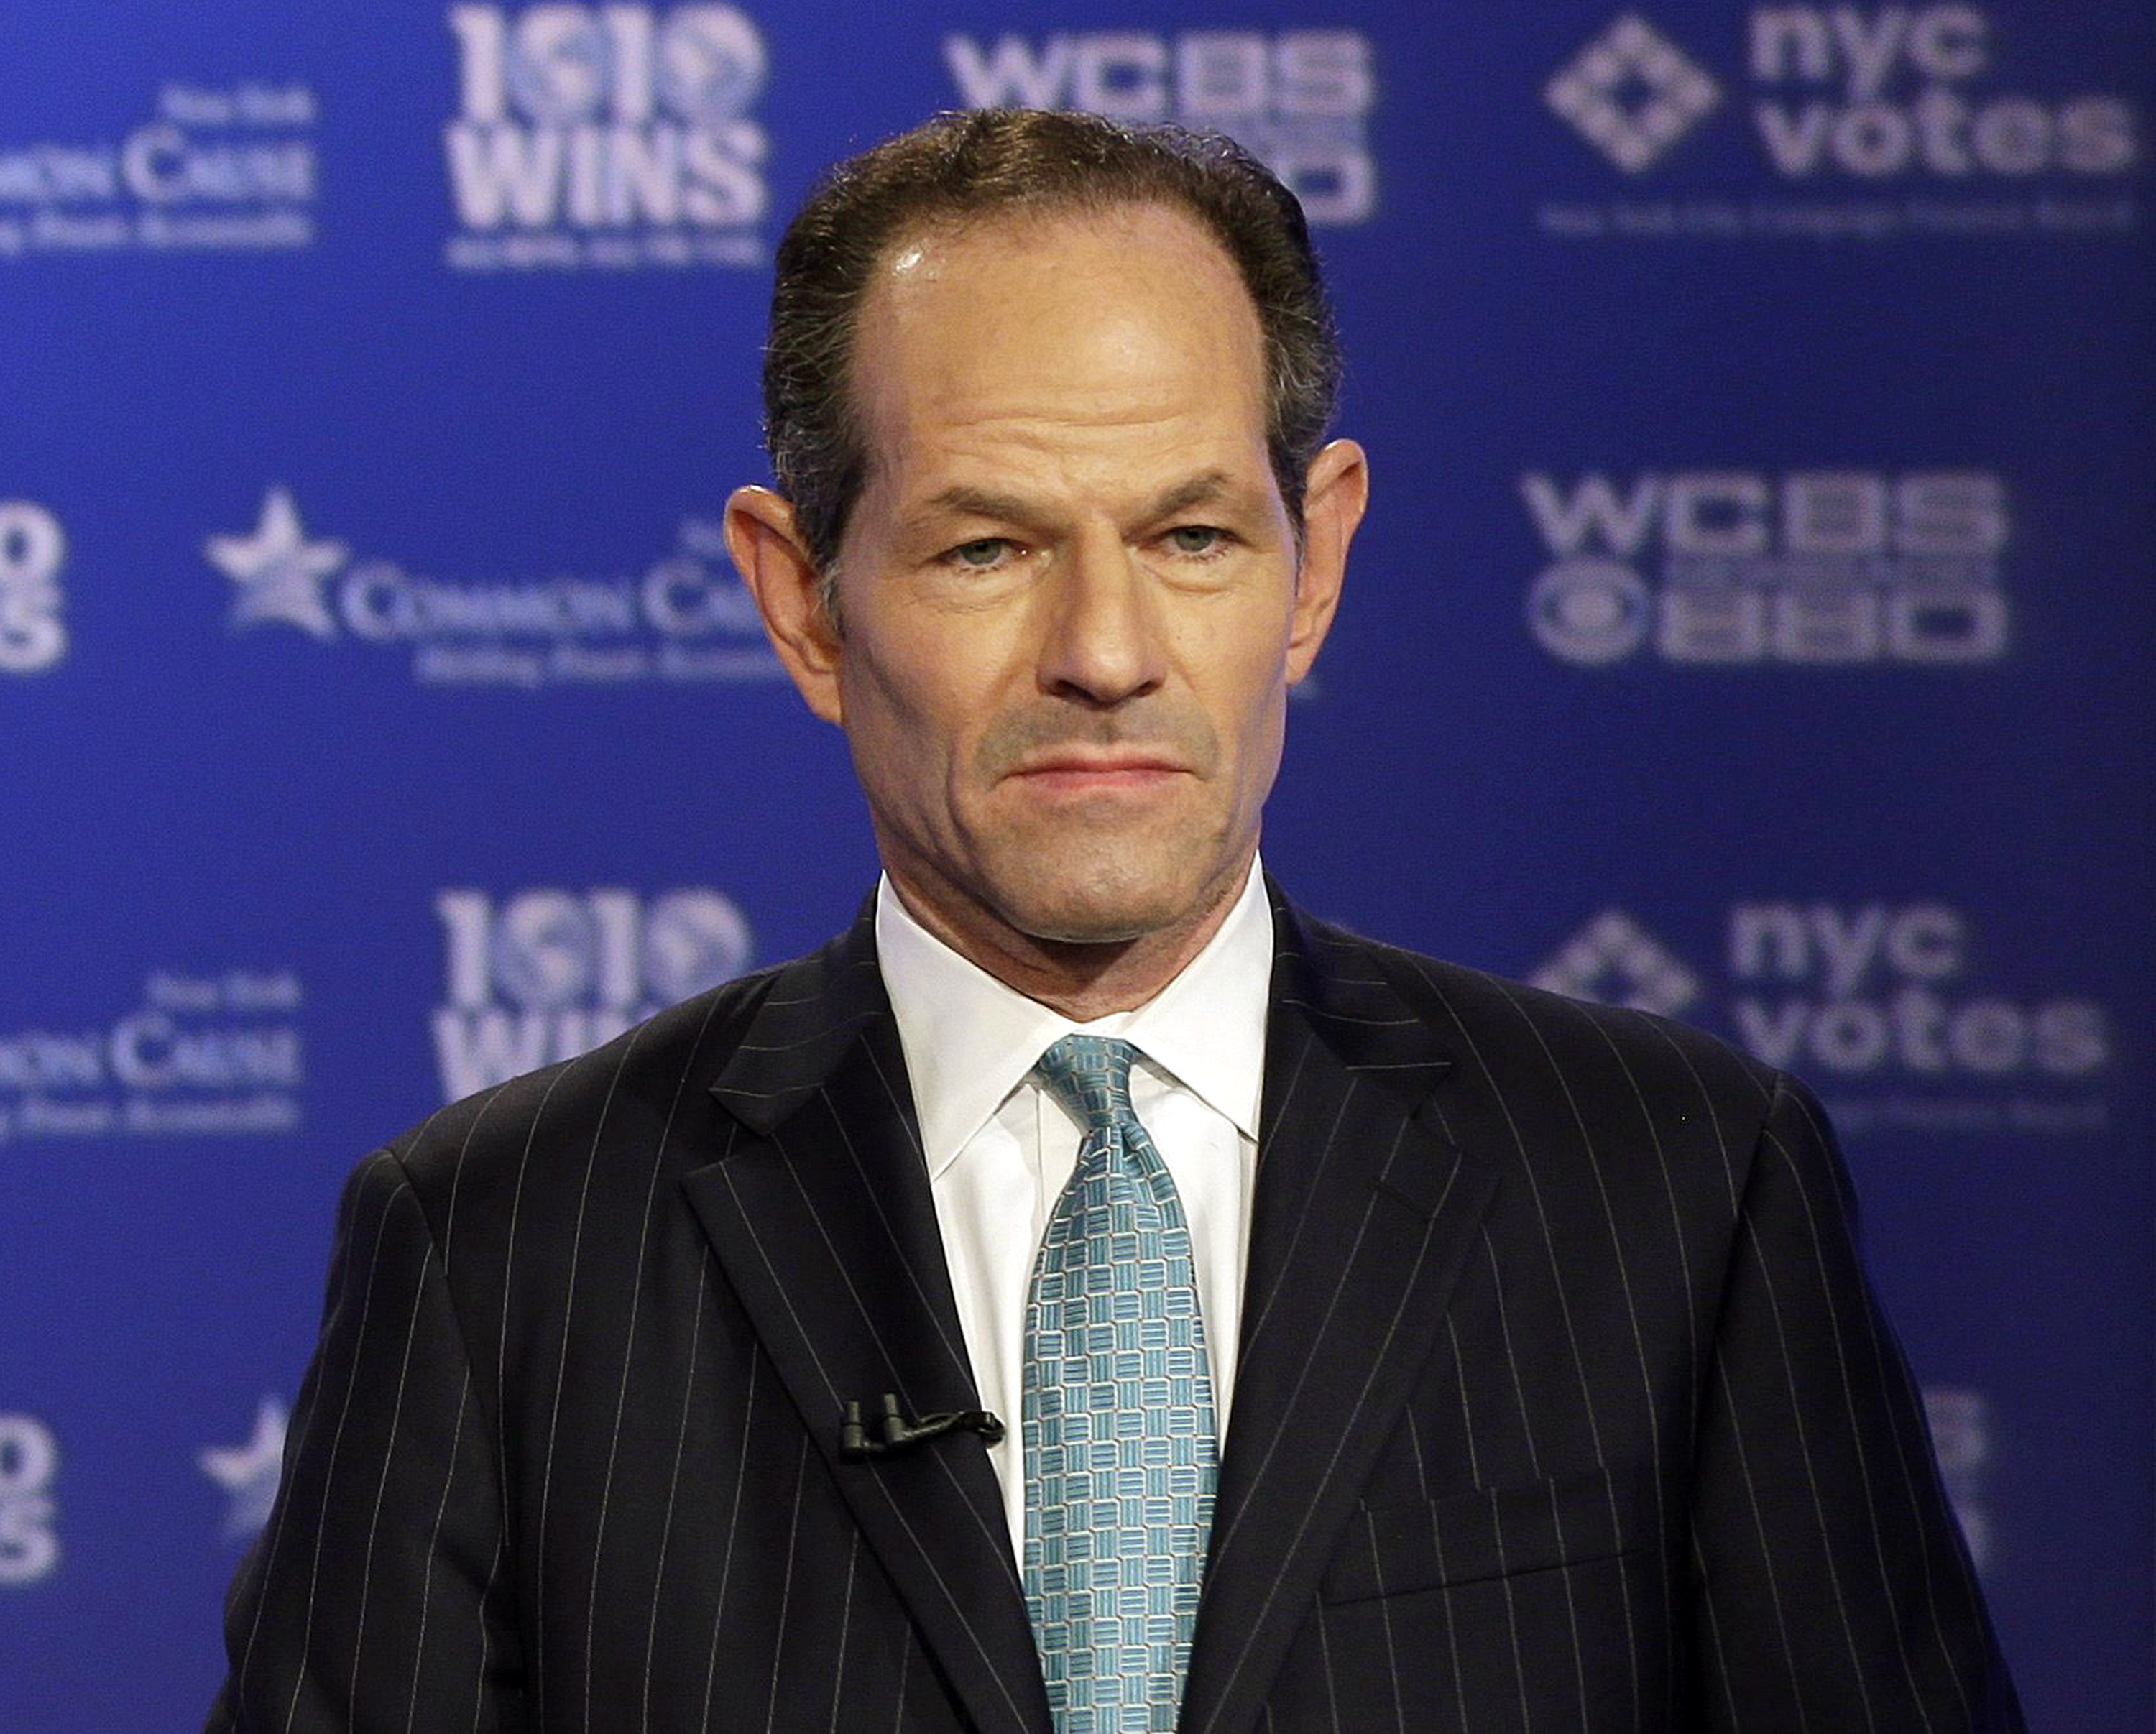 Hero or hack? Eliot Spitzer pushes the limits of prosecutorial progressivism.